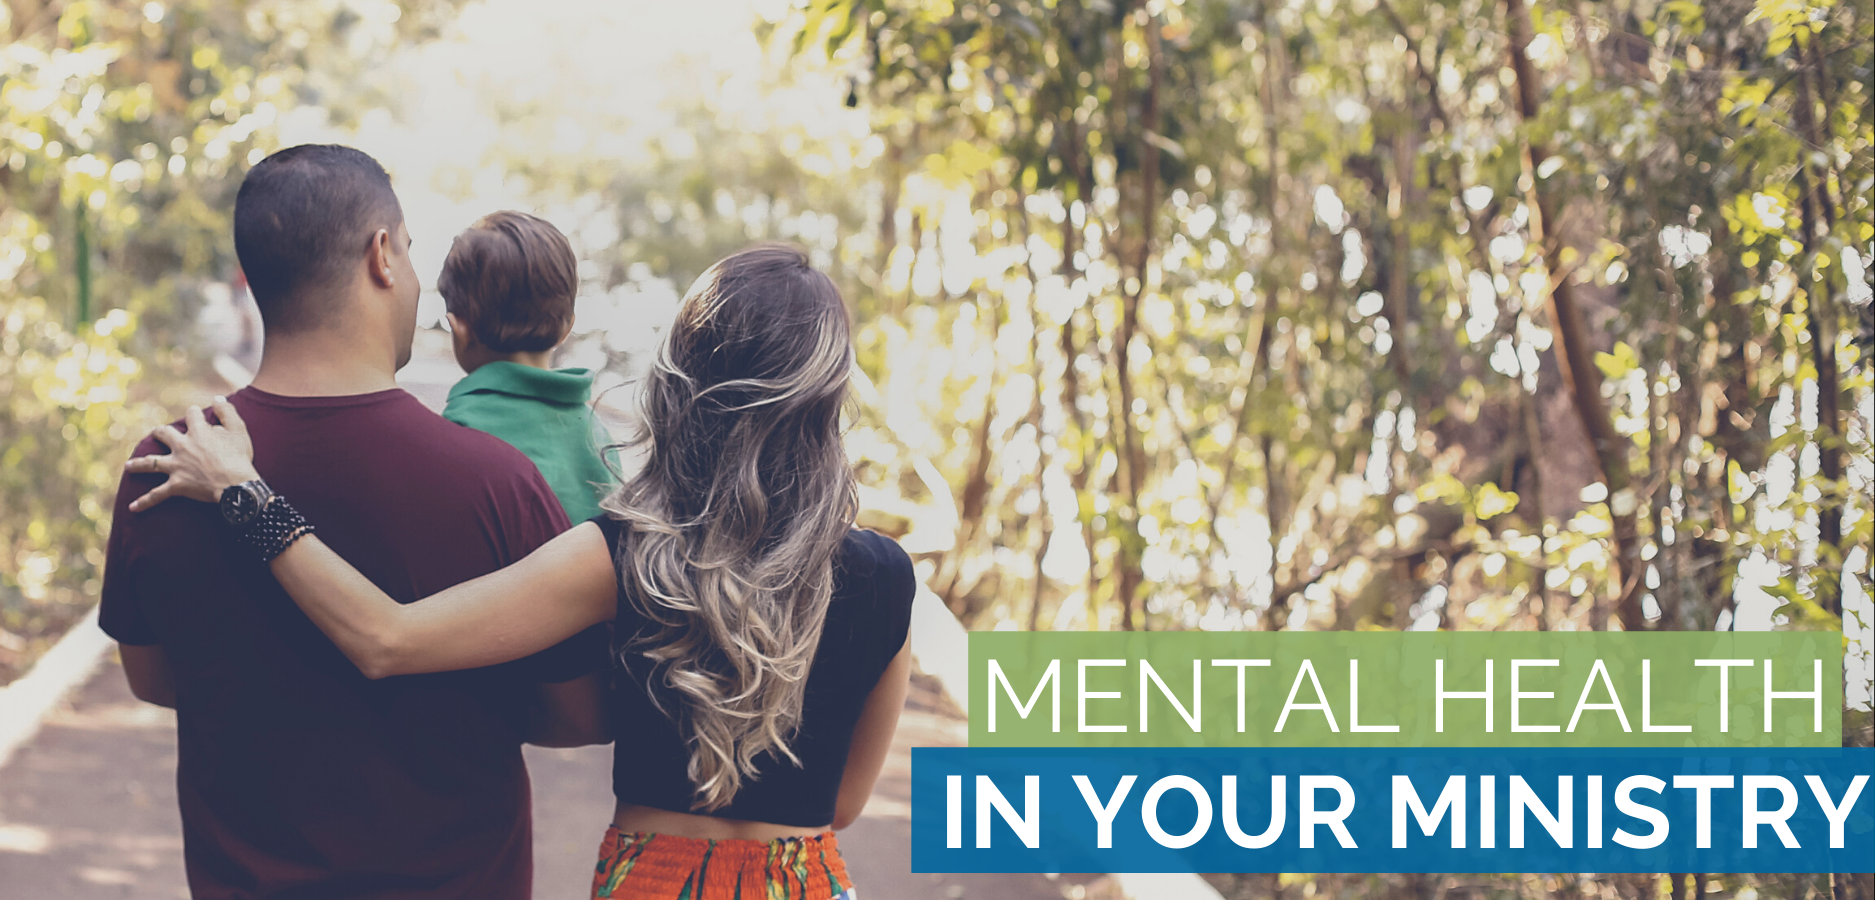 Mental health in your ministry graphic